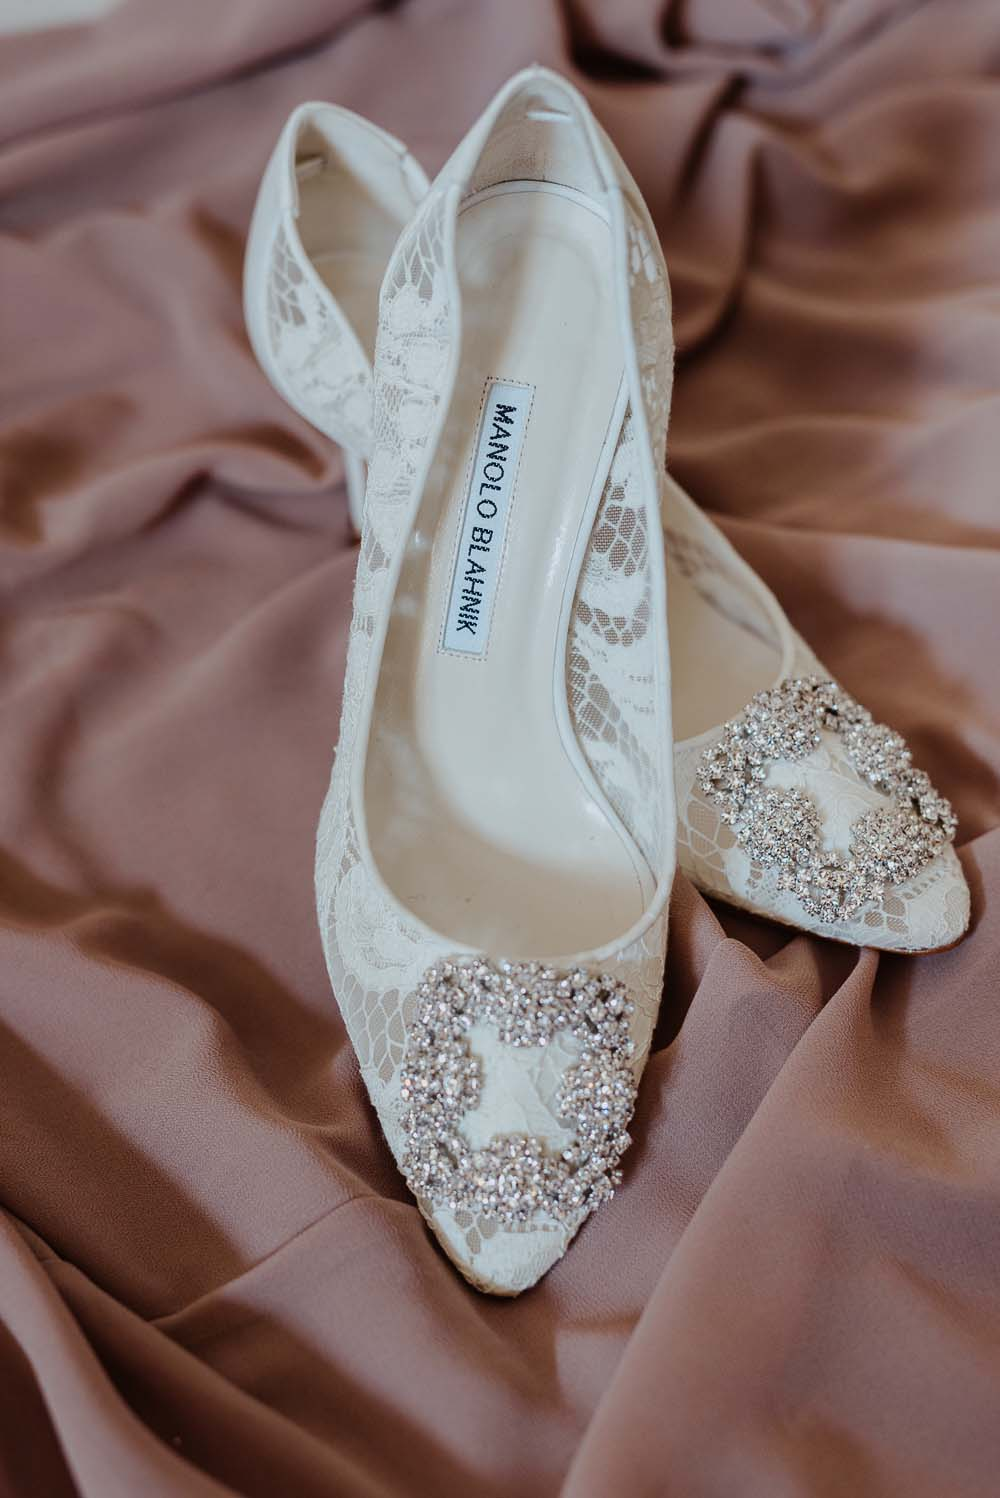 An Opulent Wedding At The Royal Conservatory Of Music - Shoes